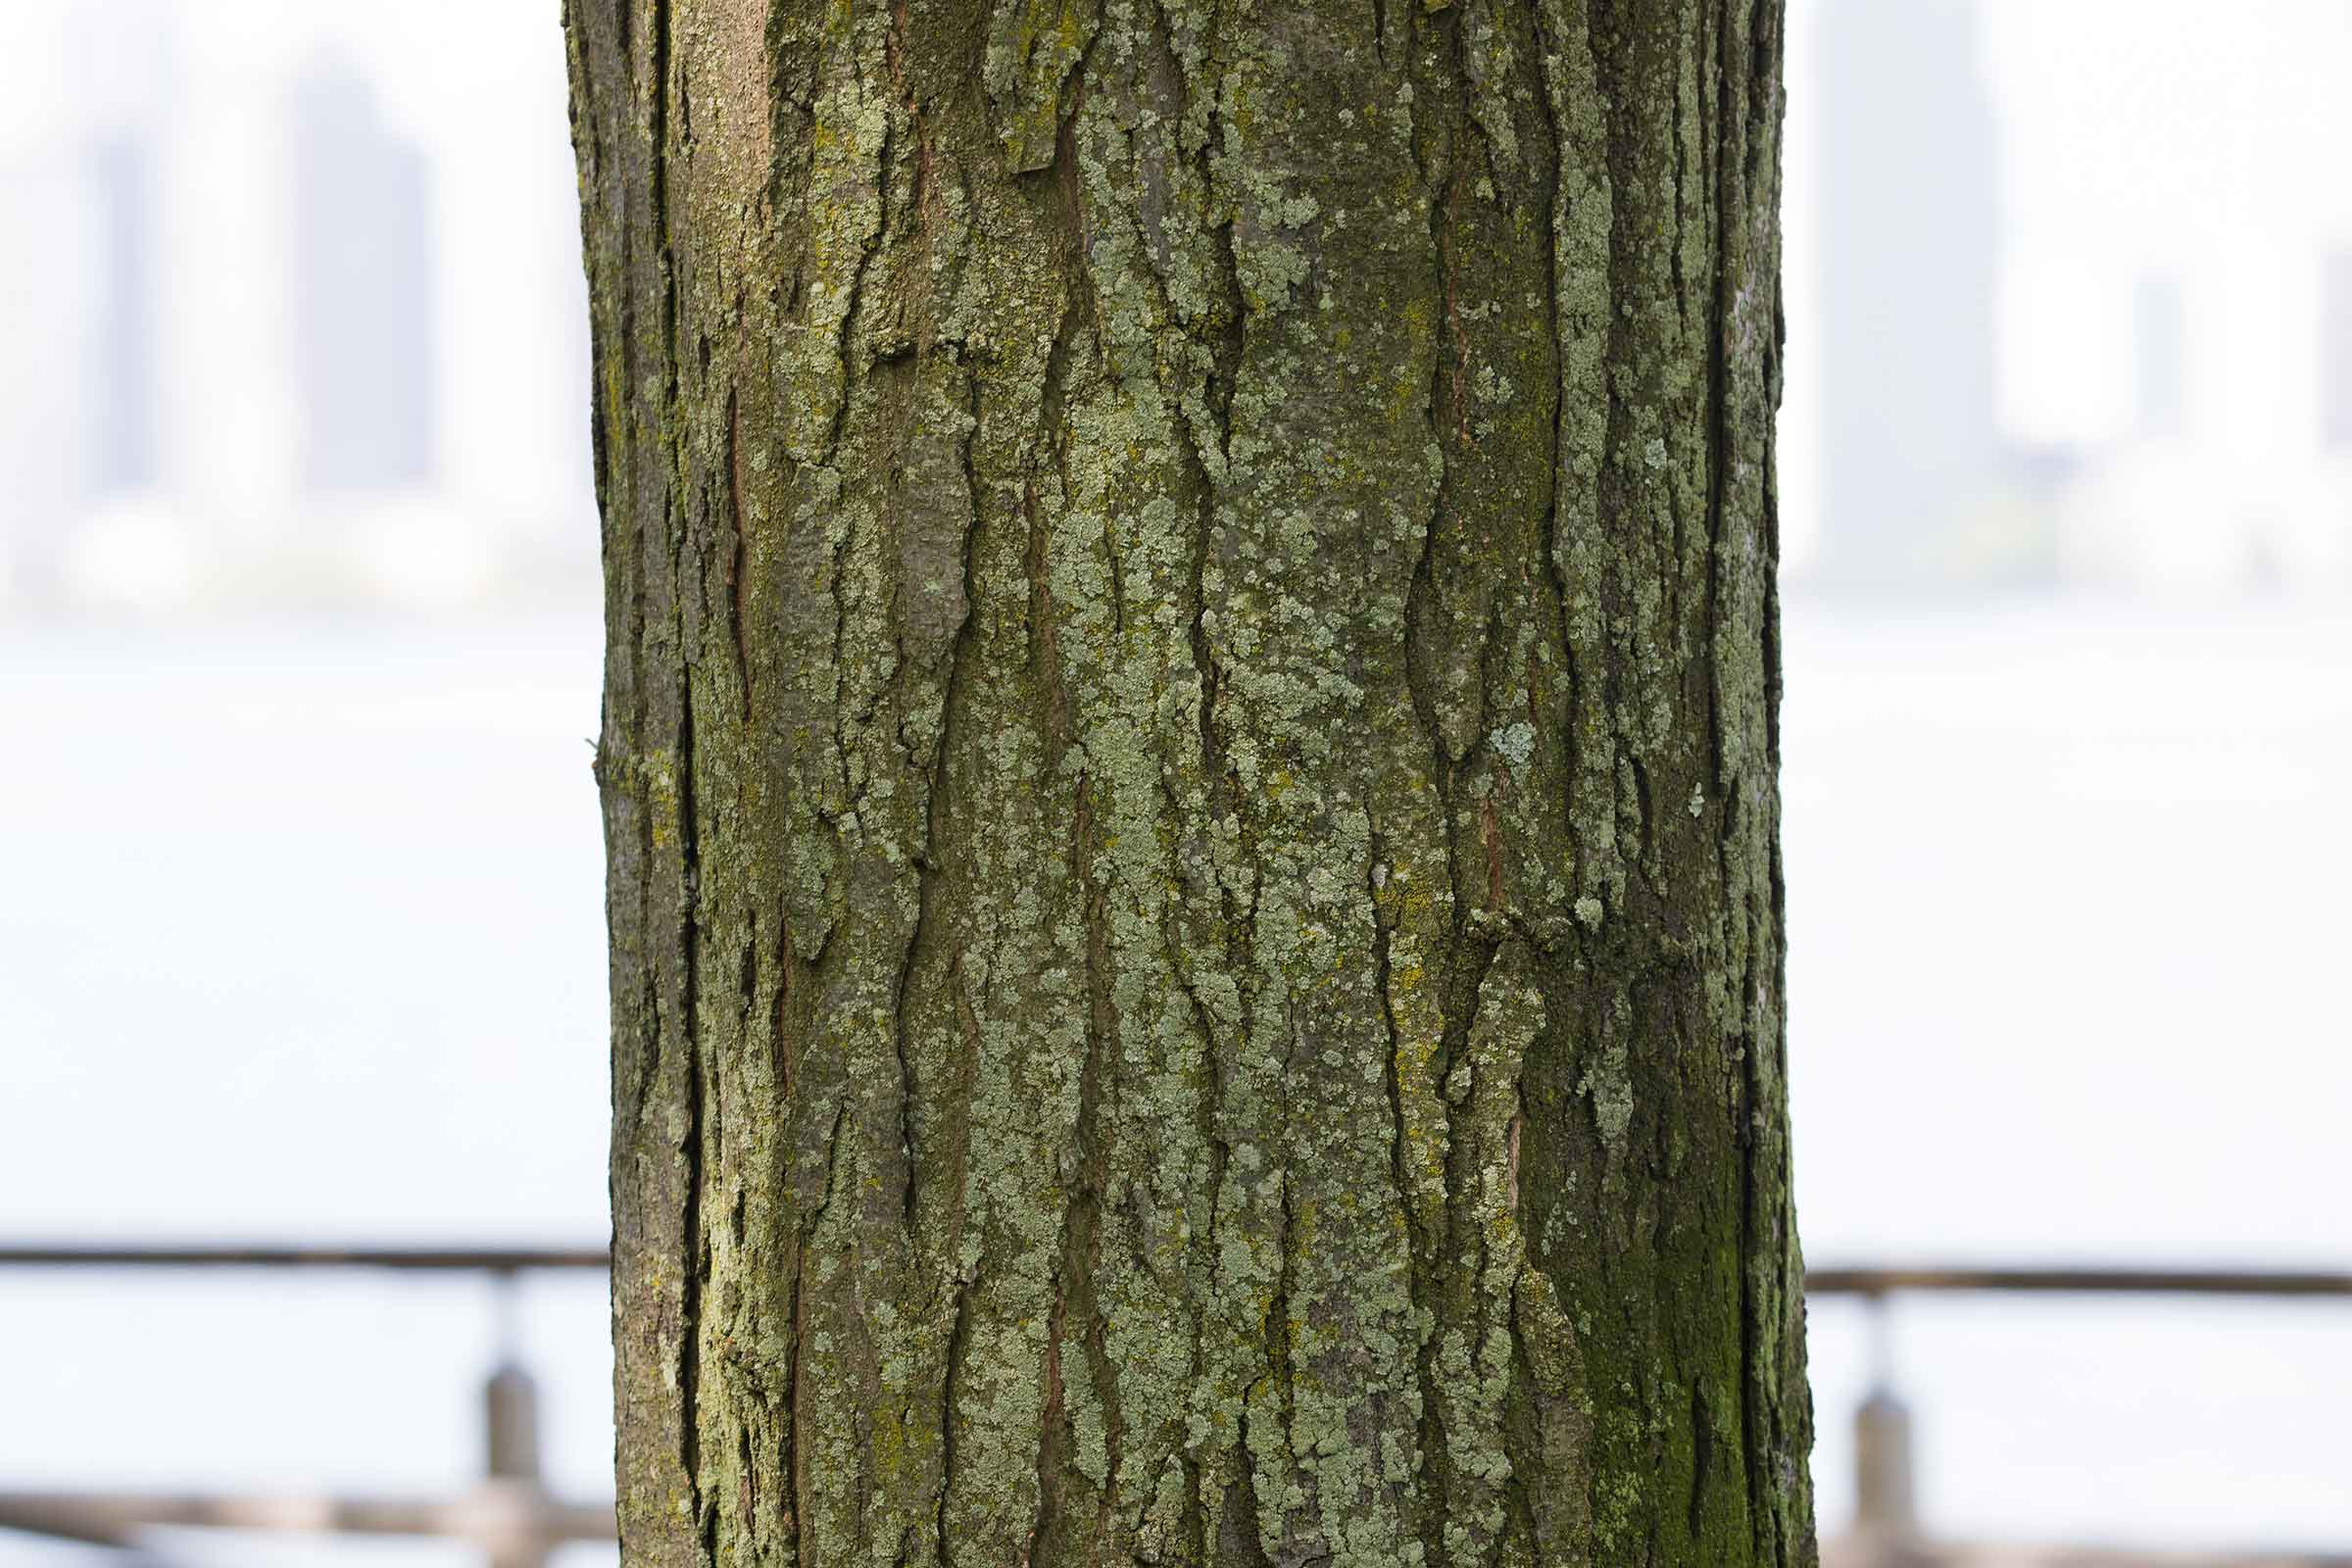 The mighty bark with notches on the trunk of the honey locust